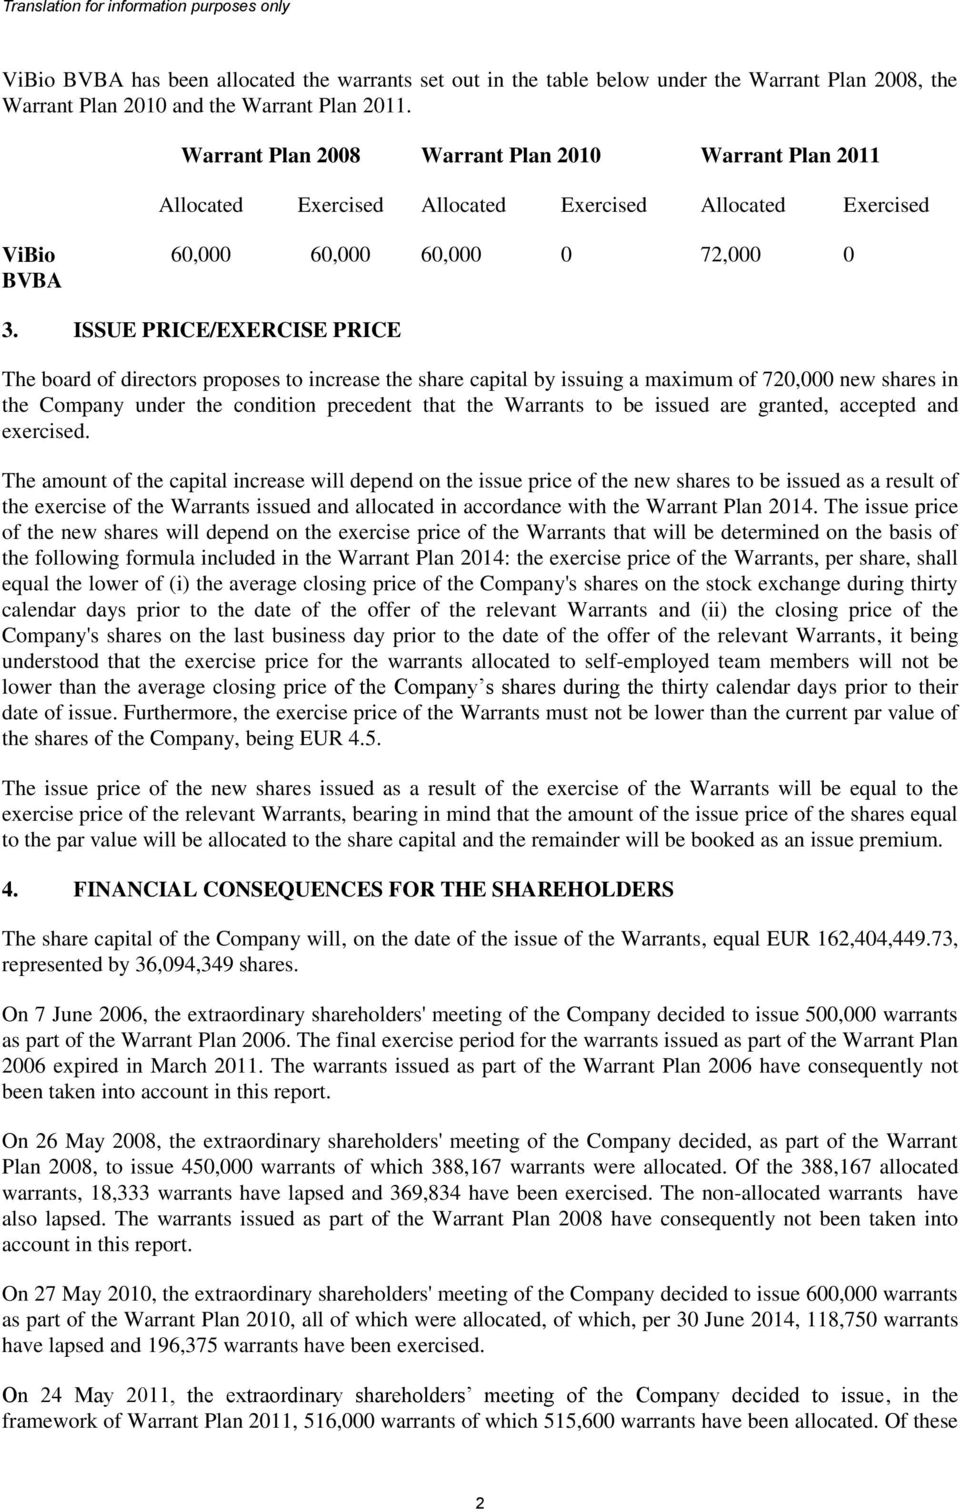 ISSUE PRICE/EXERCISE PRICE The board of directors proposes to increase the share capital by issuing a maximum of 720,000 new shares in the Company under the condition precedent that the Warrants to